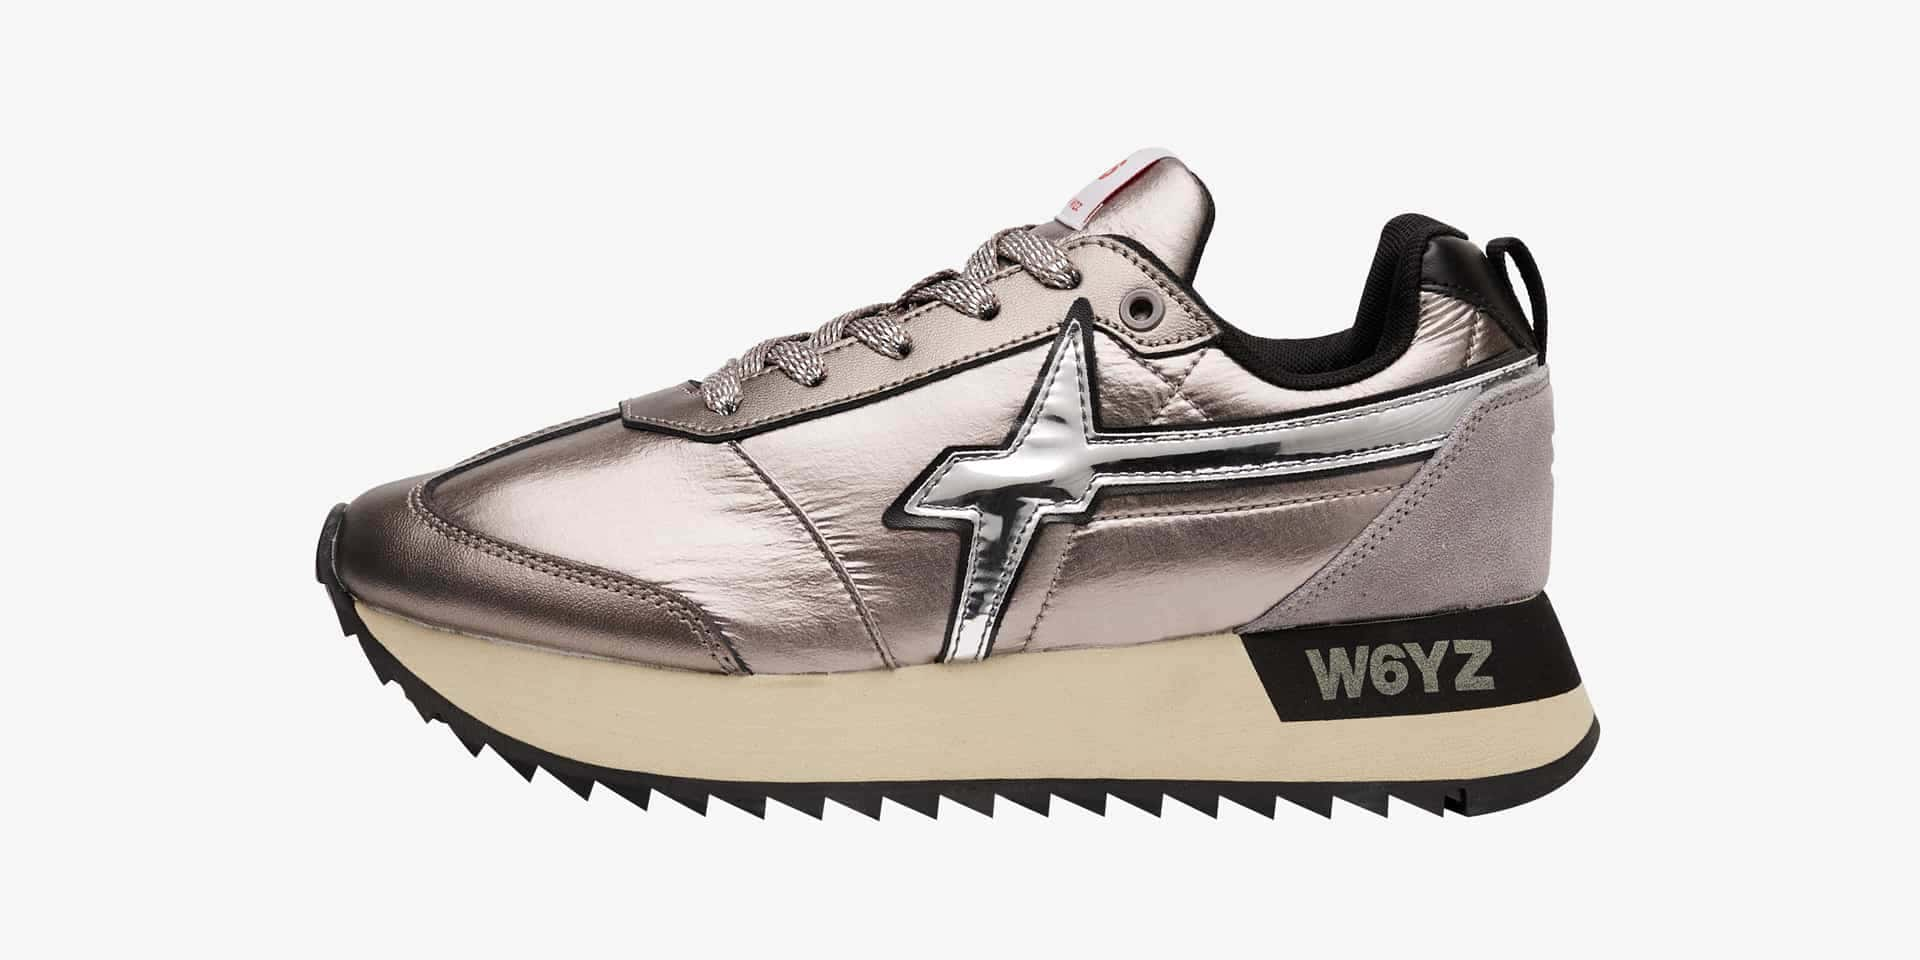 KIS-W. - Laminated leather sneakers - Silver